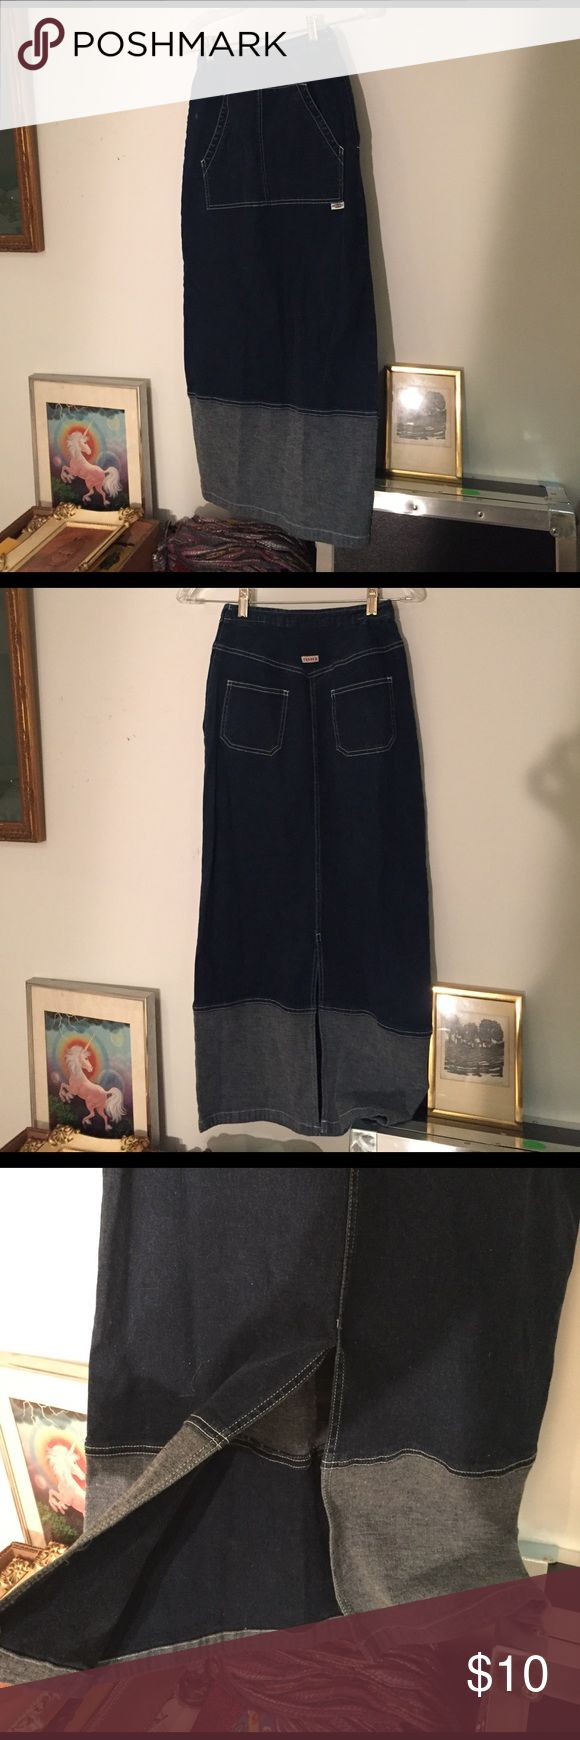 Tight high waisted denim skirt Early 2000's stretch denim skirt. High waisted. Must have small waist. Awesome front pocket. Nice and tight to show curves Skirts Pencil